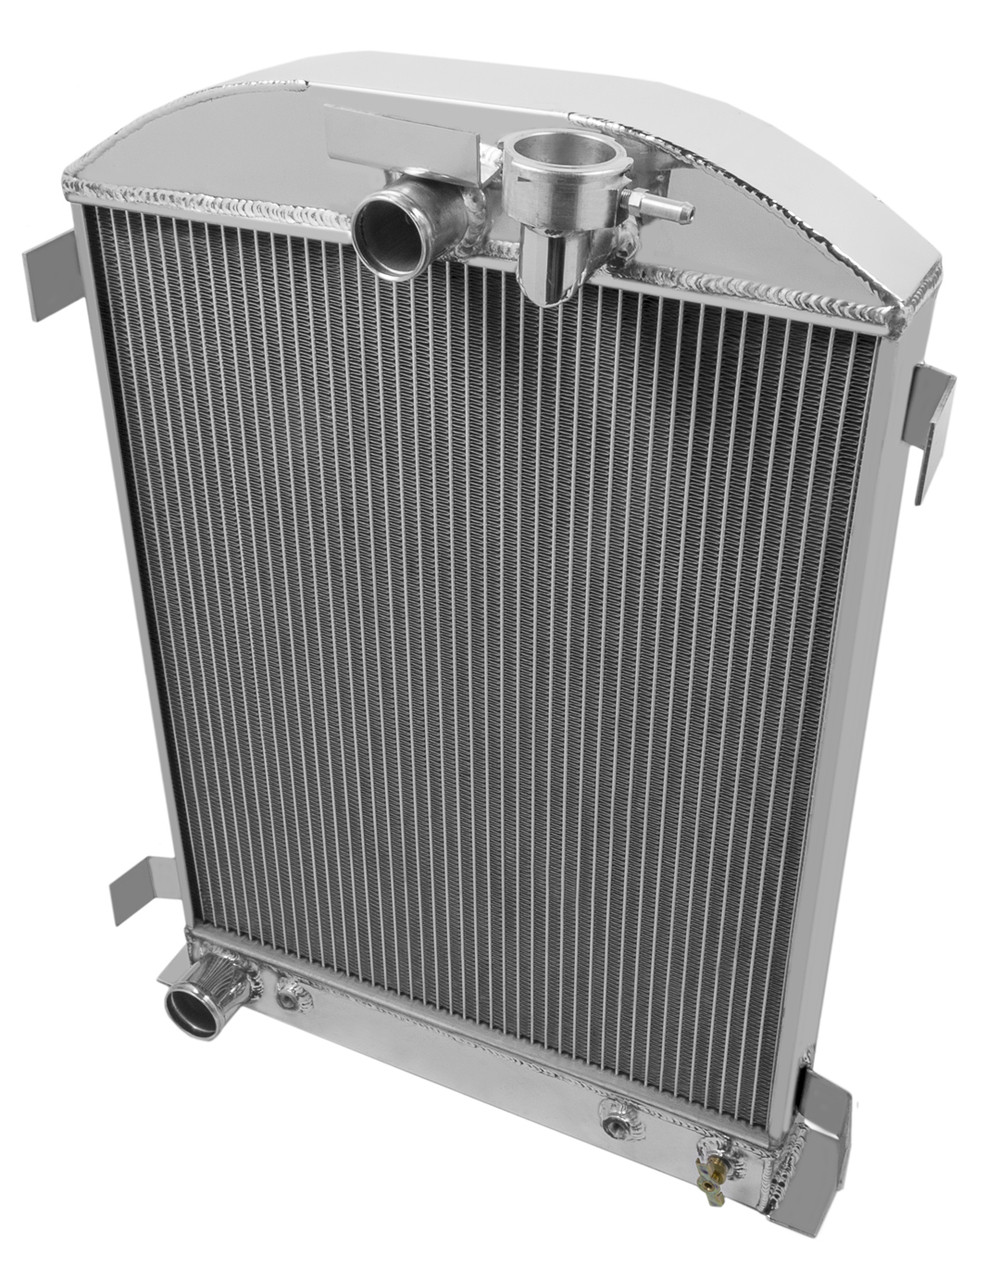 3 core aluminum radiator for 1932 Ford Chopped Cchevrolet engine auto new